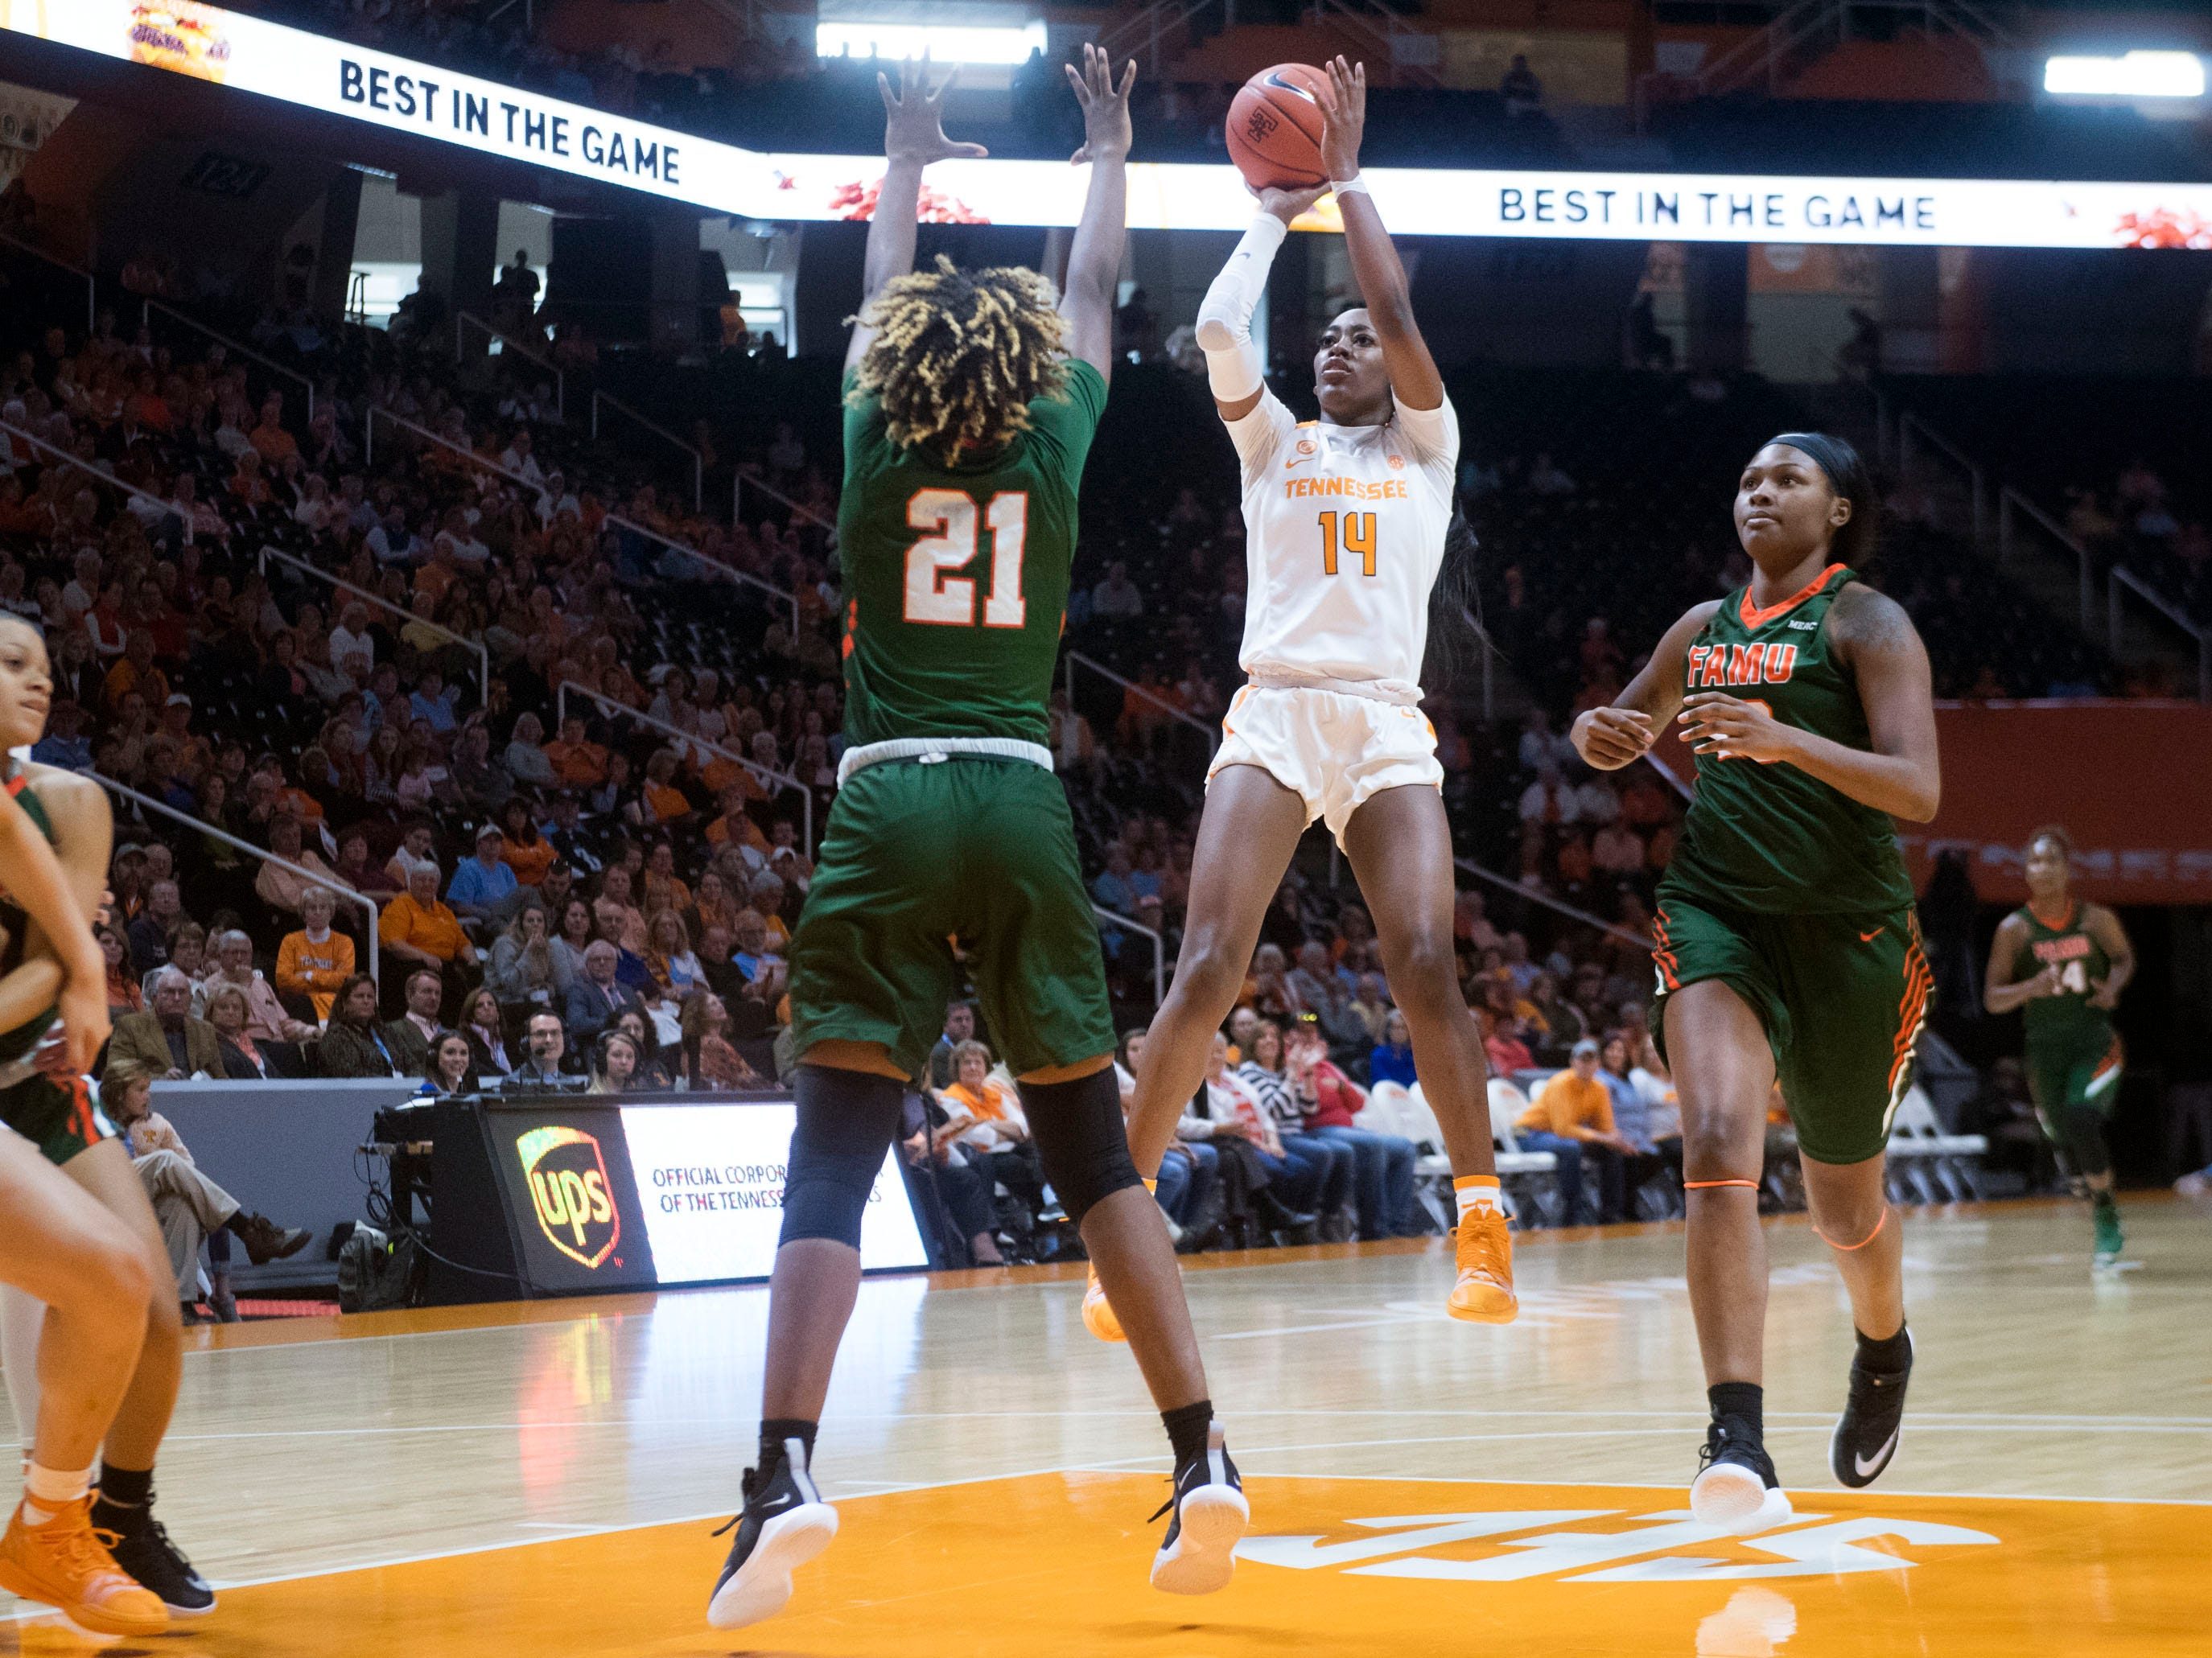 Tennessee's Zaay Green (14) gets a shot off while defended by Florida A&M's Keziah Dilworth (21) on Sunday, November 18, 2018 at Thompson-Boling Arena.